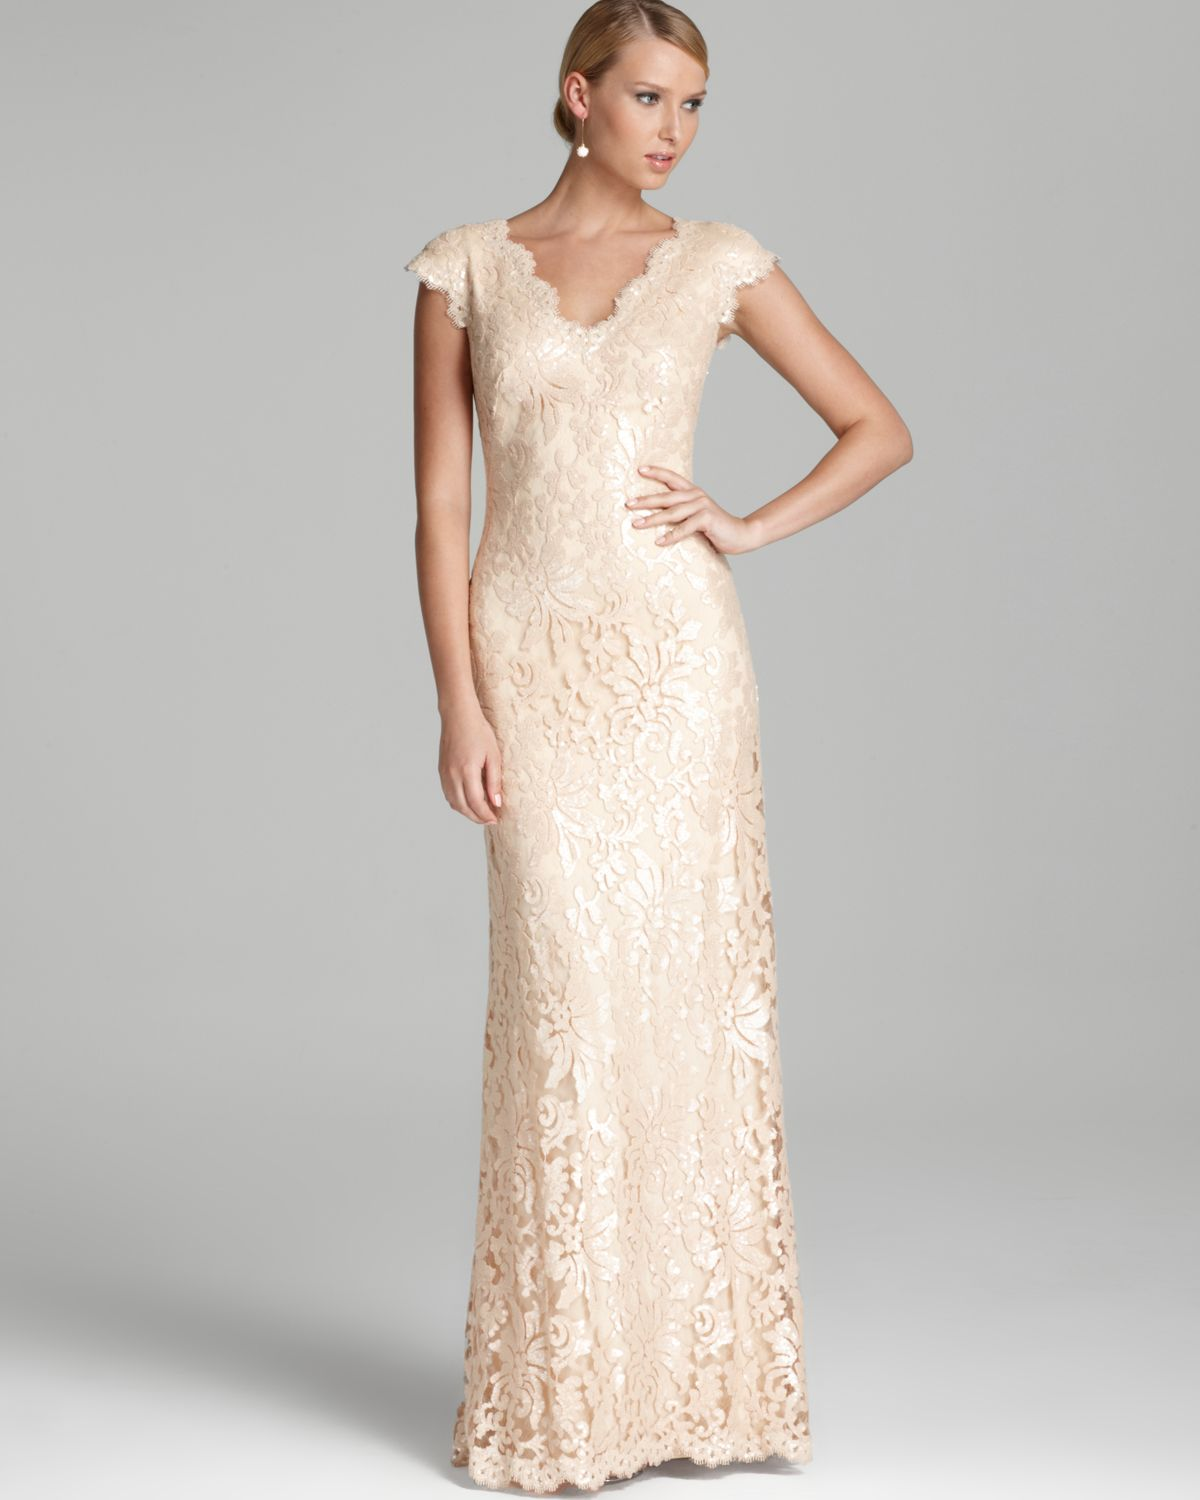 Tadashi Shoji Lace Gown Cap Sleeve V Neck Sequin in White - Lyst